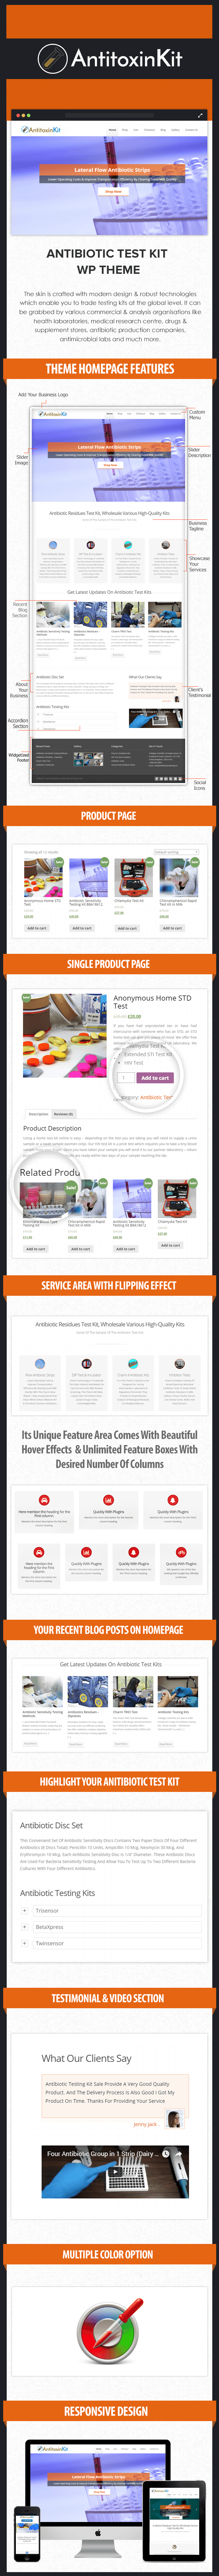 Antibiotic Test Kit WordPress Theme Sales